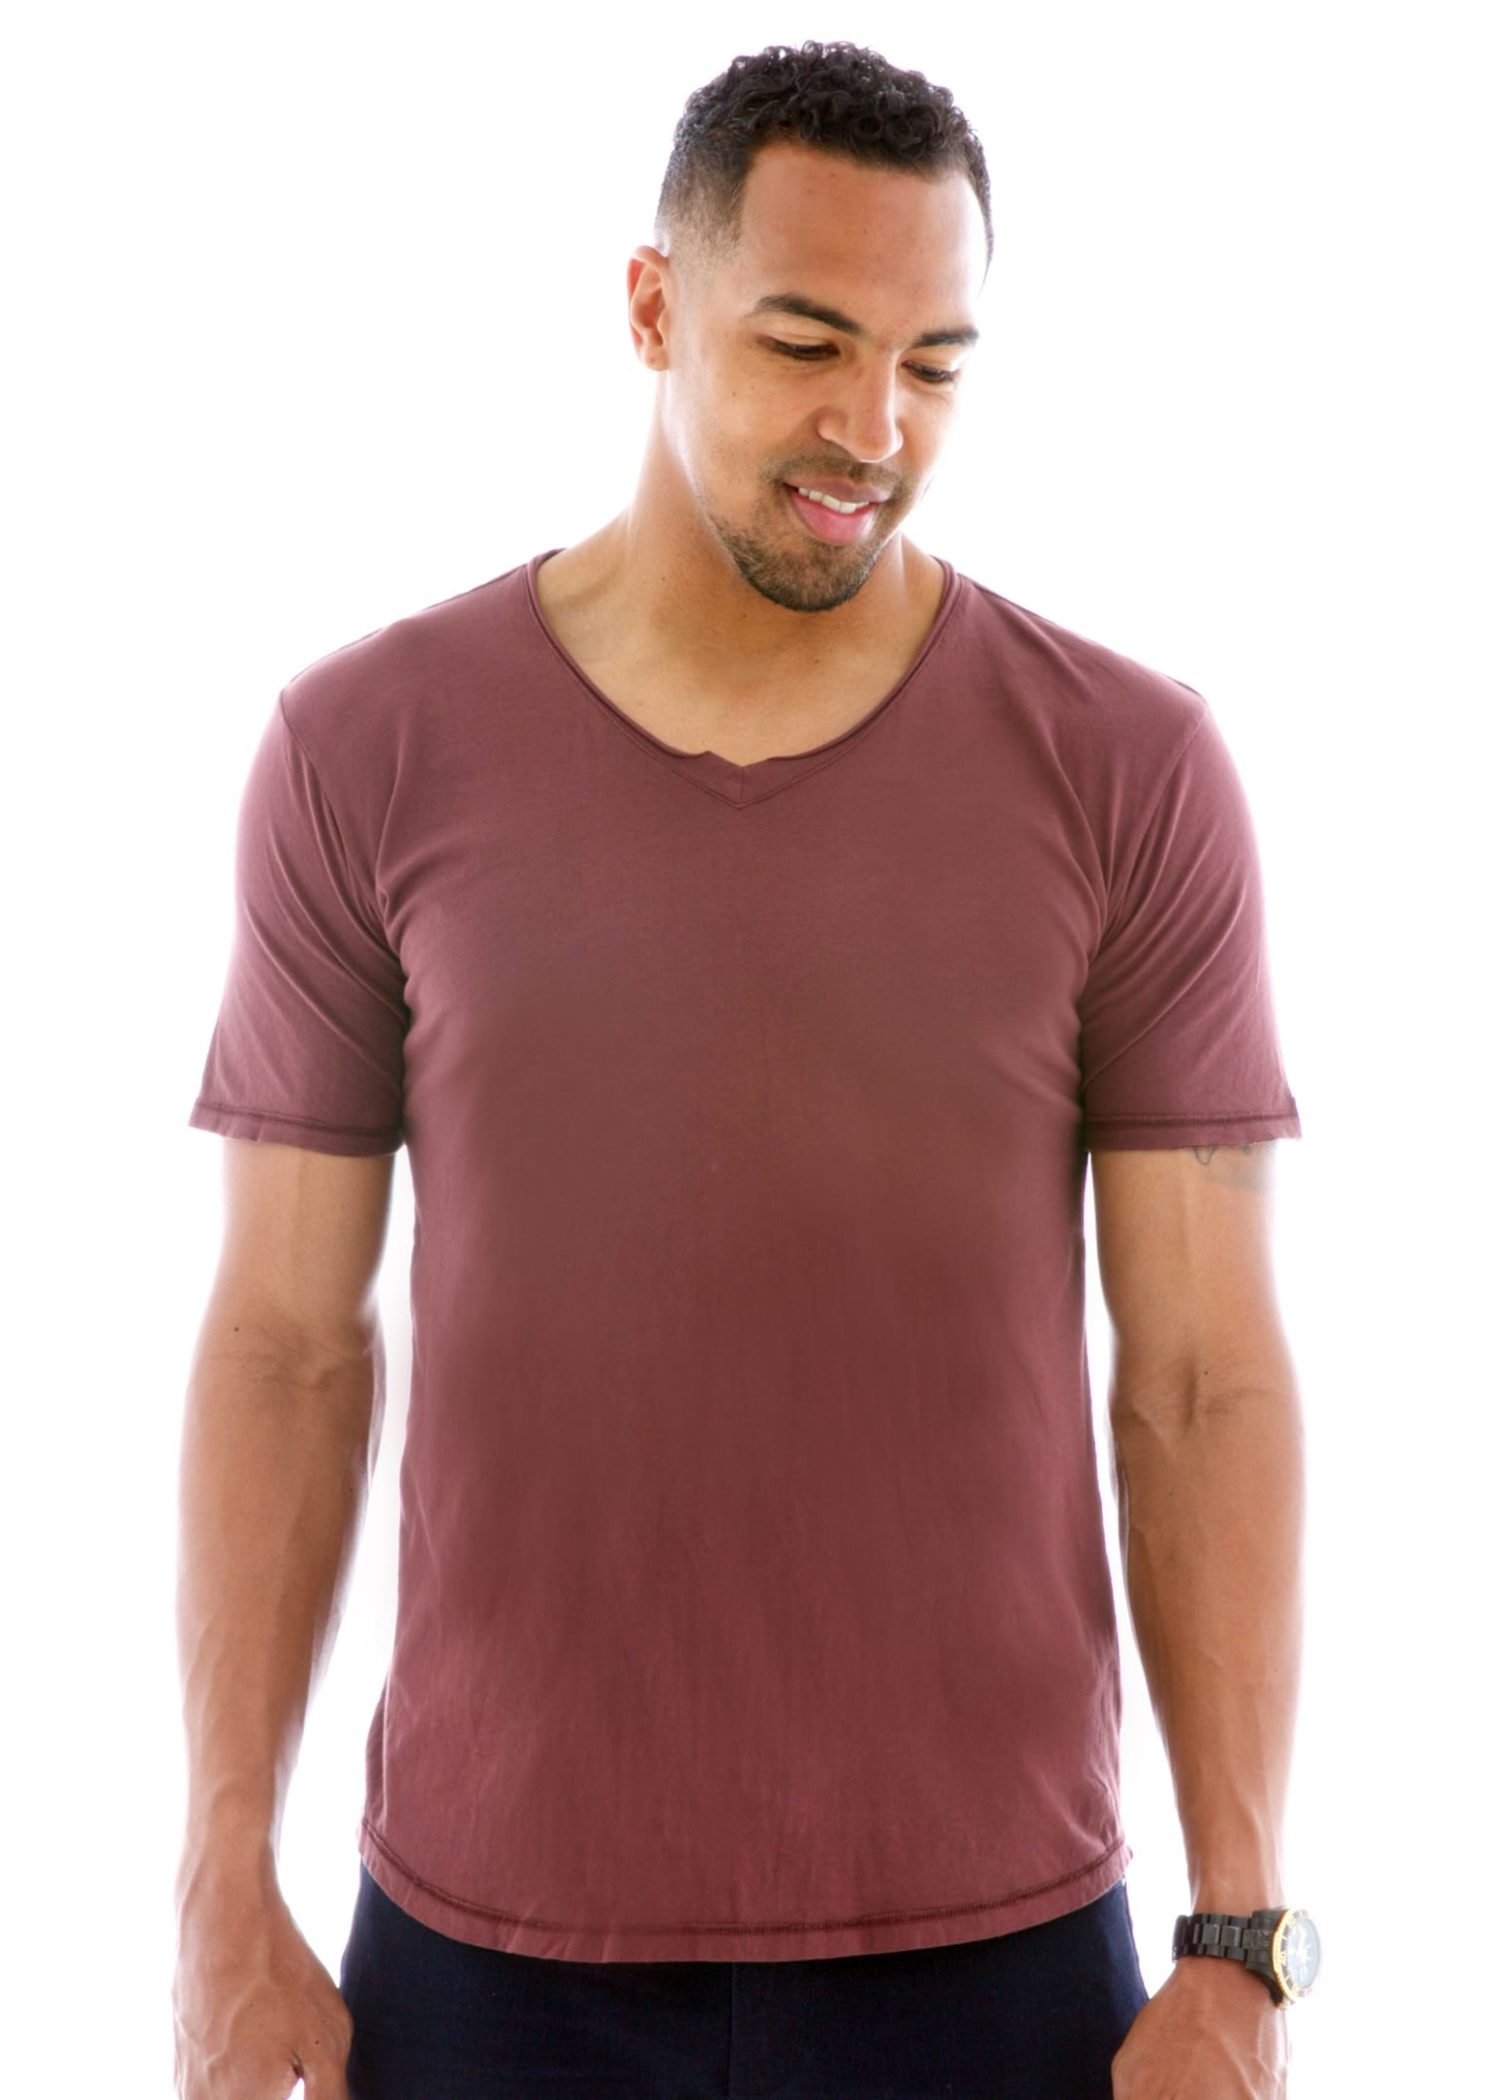 Men's Superfine Raw Double V-neck Short Sleeve T-Shirt